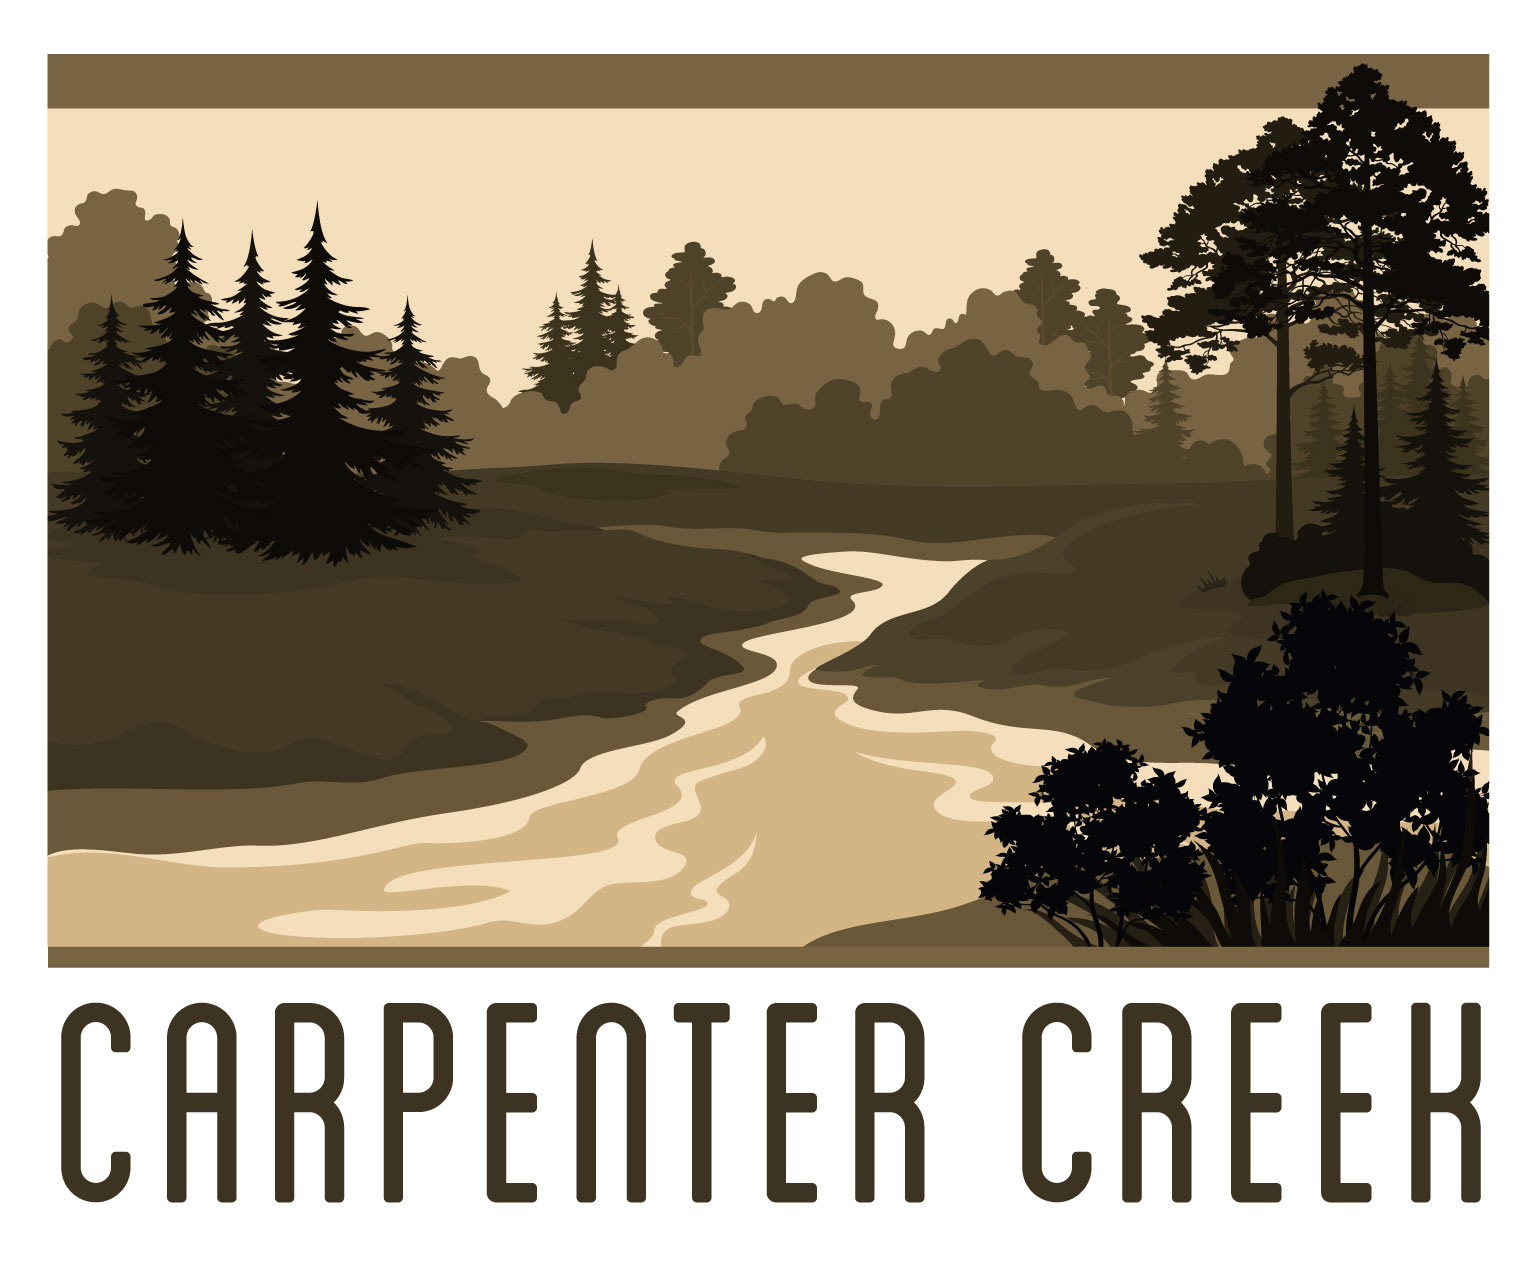 Carpenter Creek